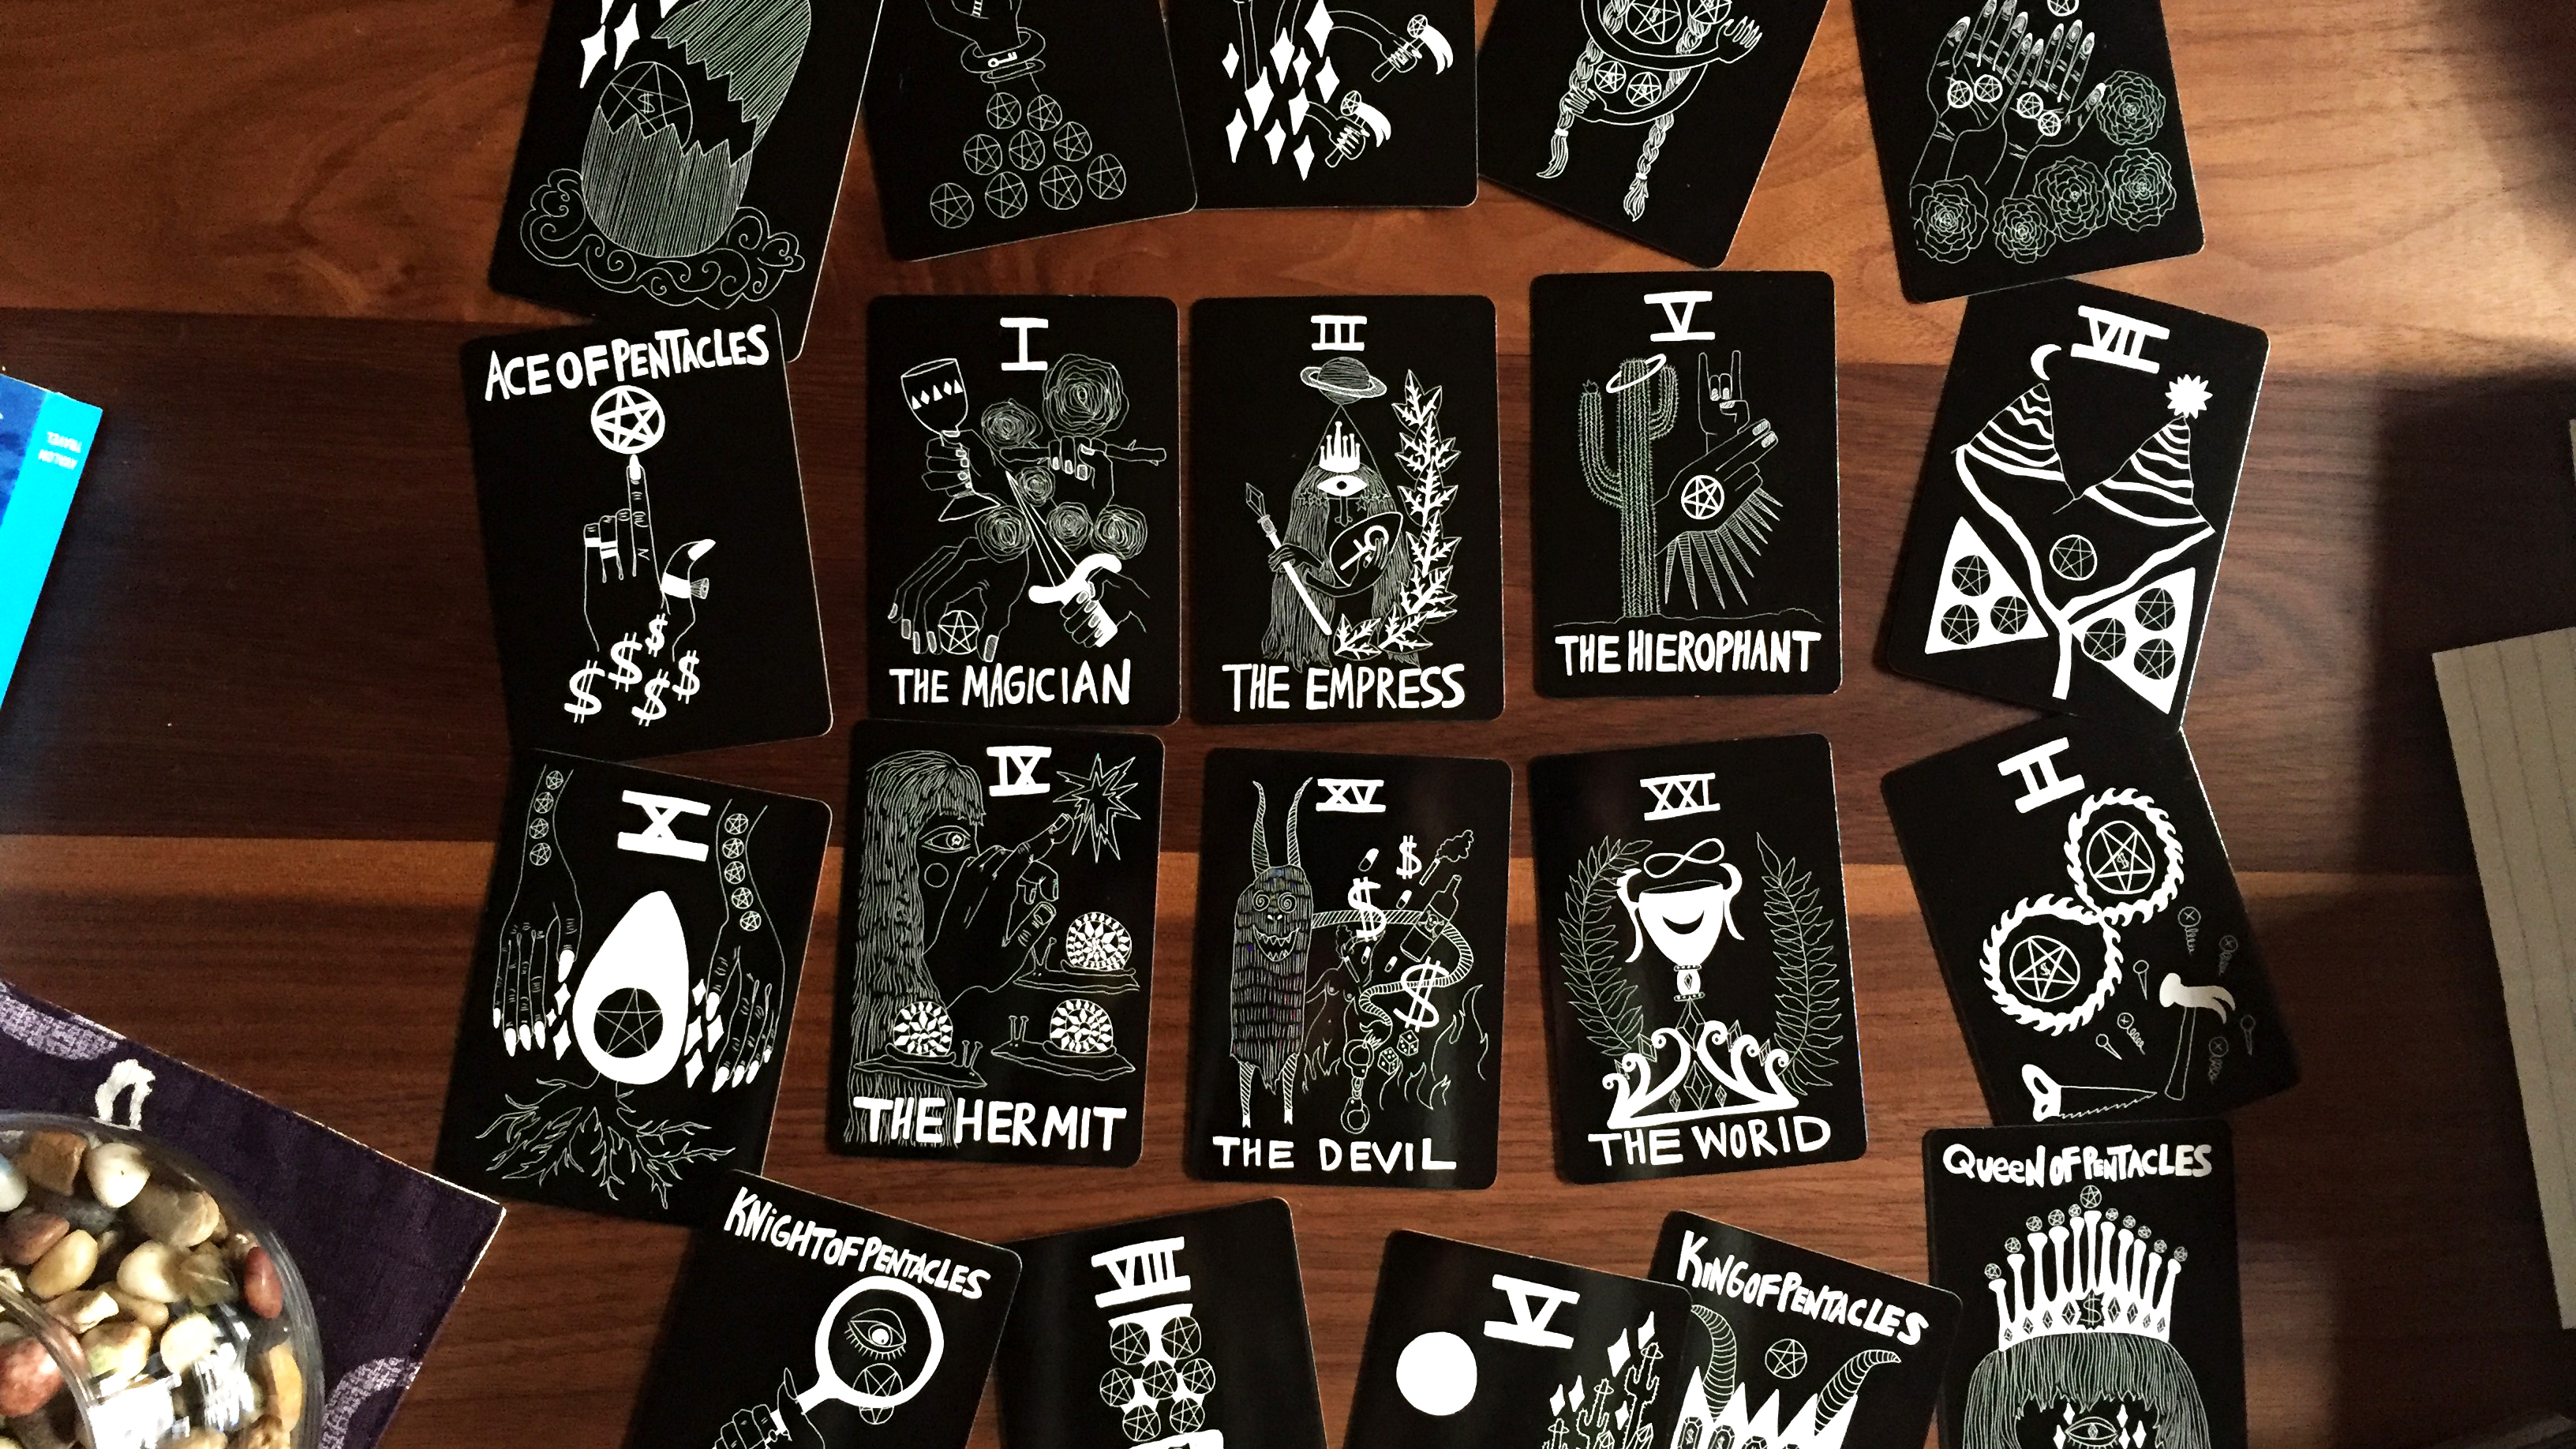 Earth cards showing major arcana Magician, Empress, Hierophant, Hermit, Devil, and World